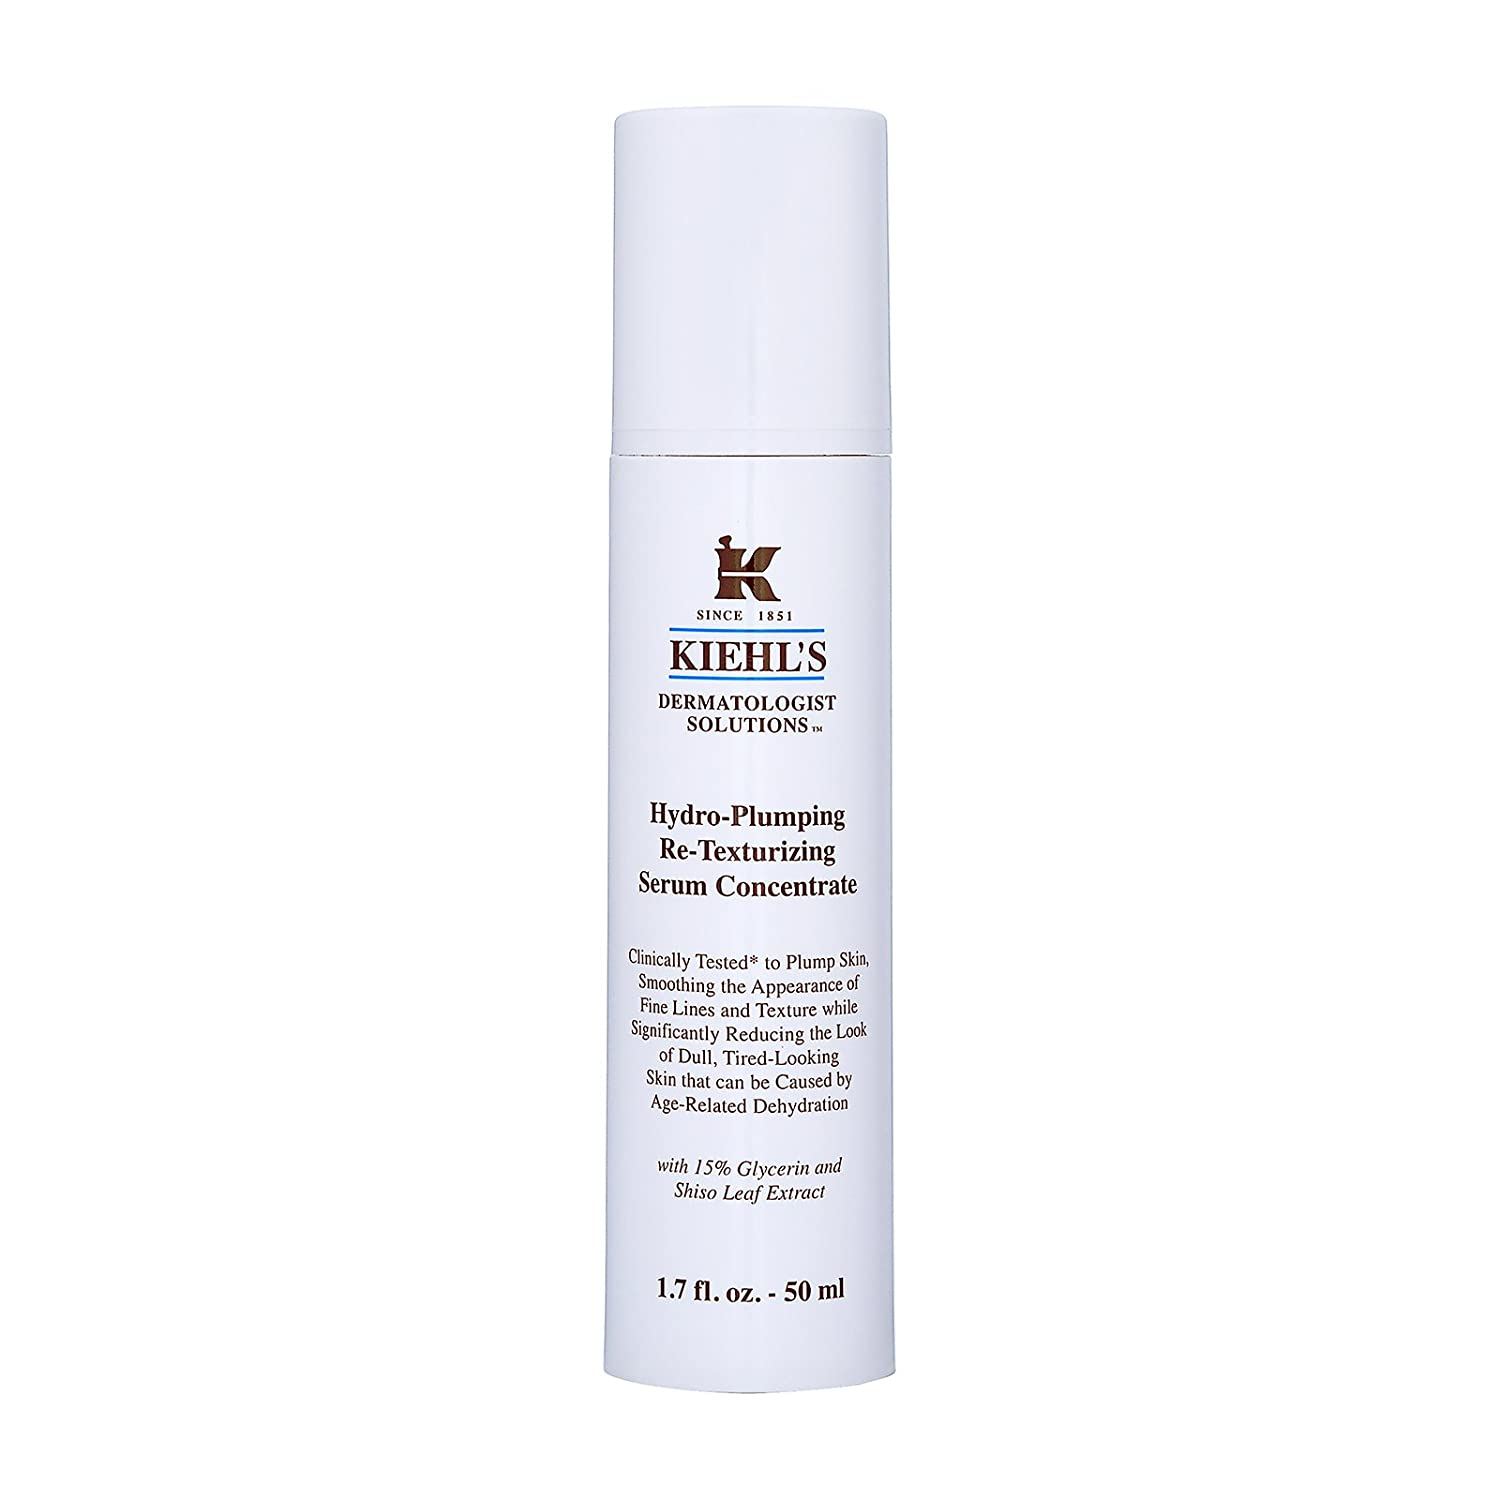 Image result for Hydro-Plumping Re-Texturizing Serum Concentrate